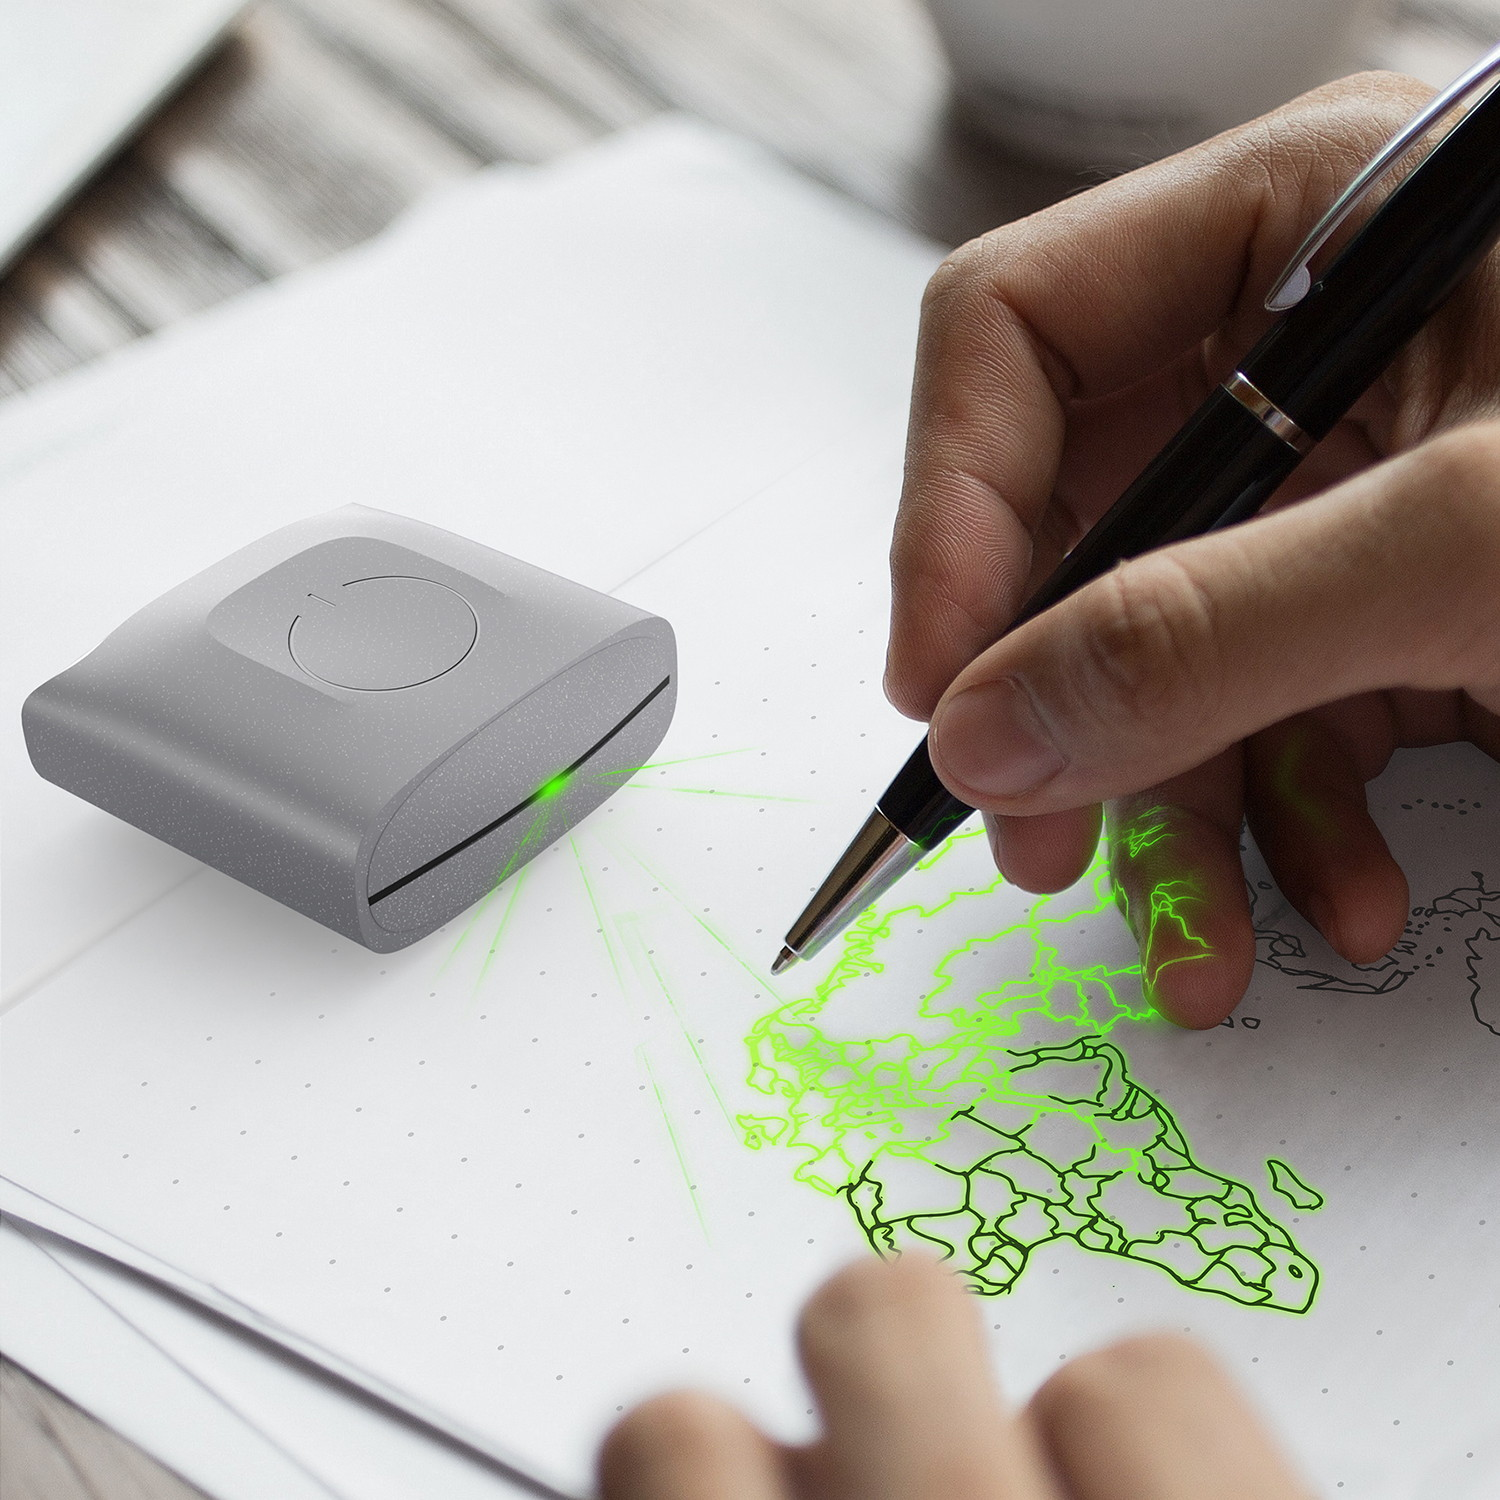 Doodlight Bullet Journal Laser Projector by Mohamad Montazeri, technology, drawing, adesignawards